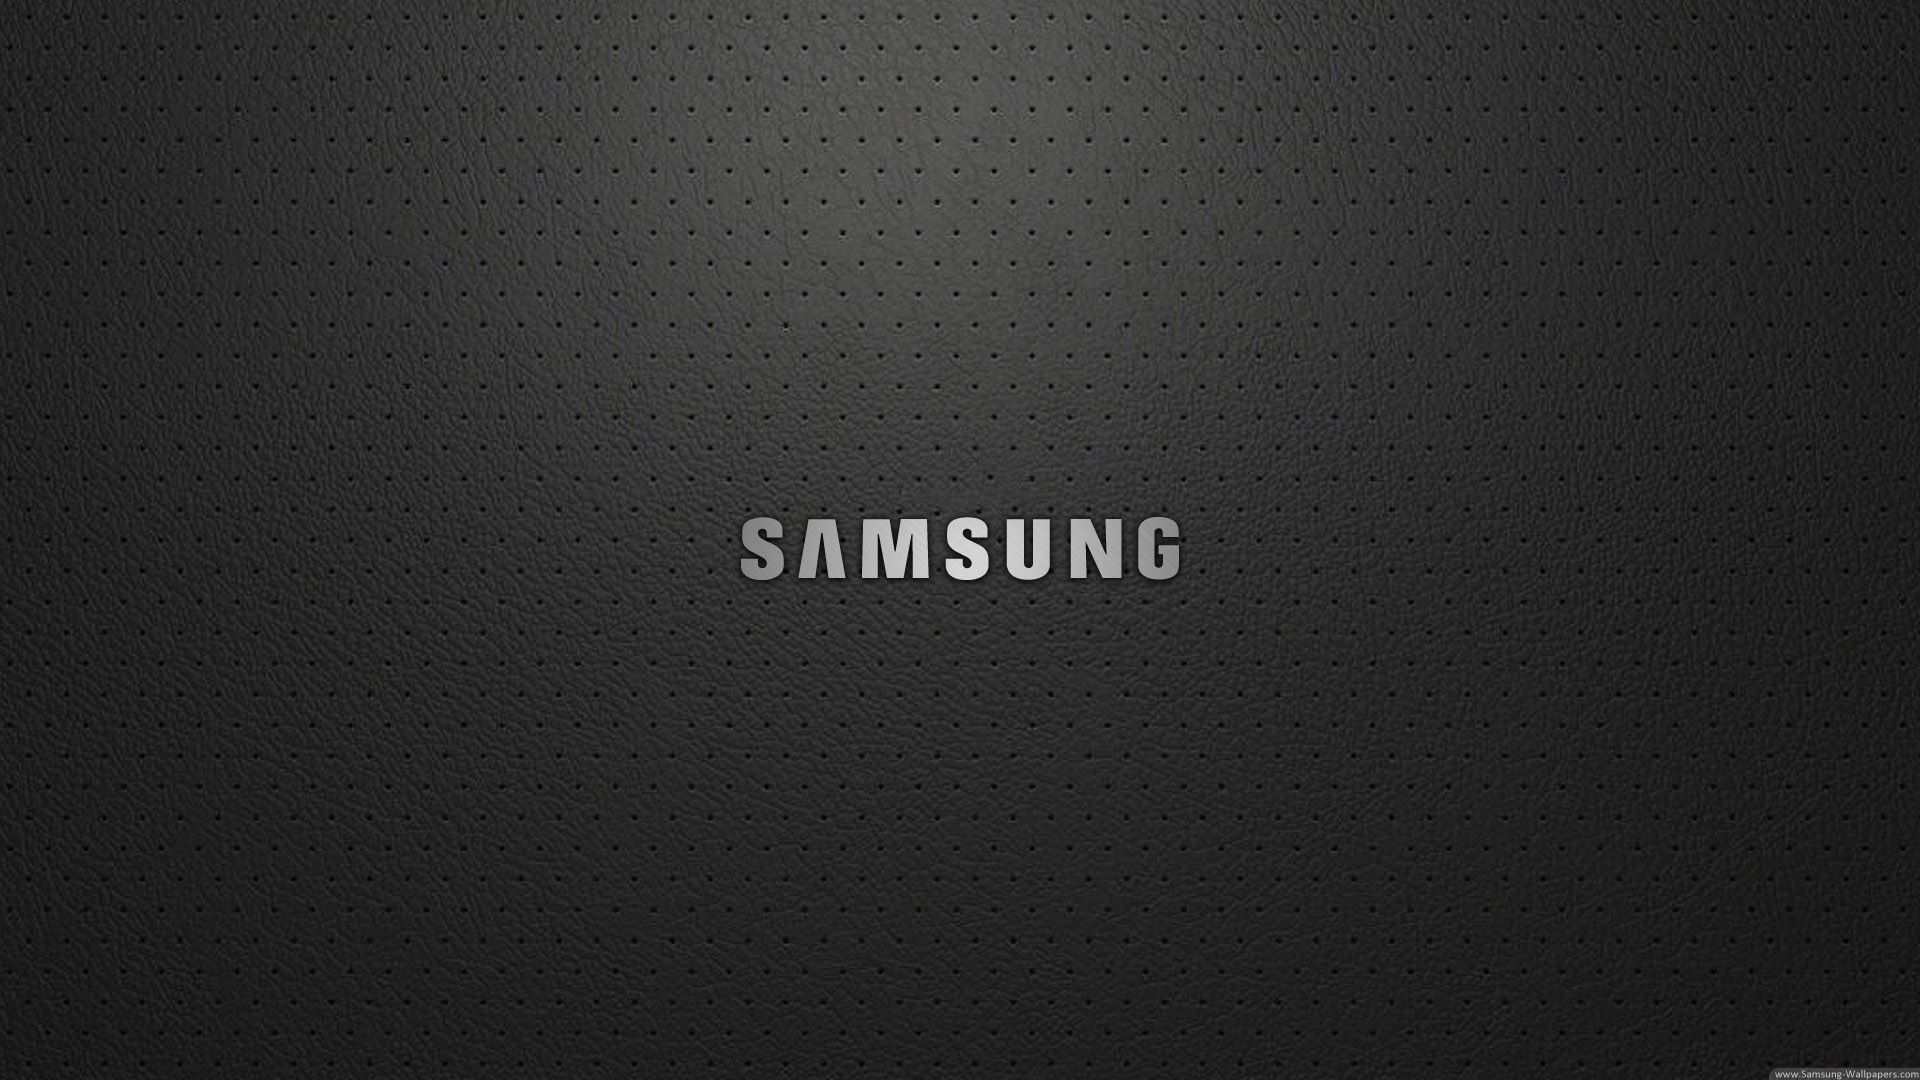 Wallpapers Logo Samsung HD Logo Backgrounds Best Desktop 1920x1080